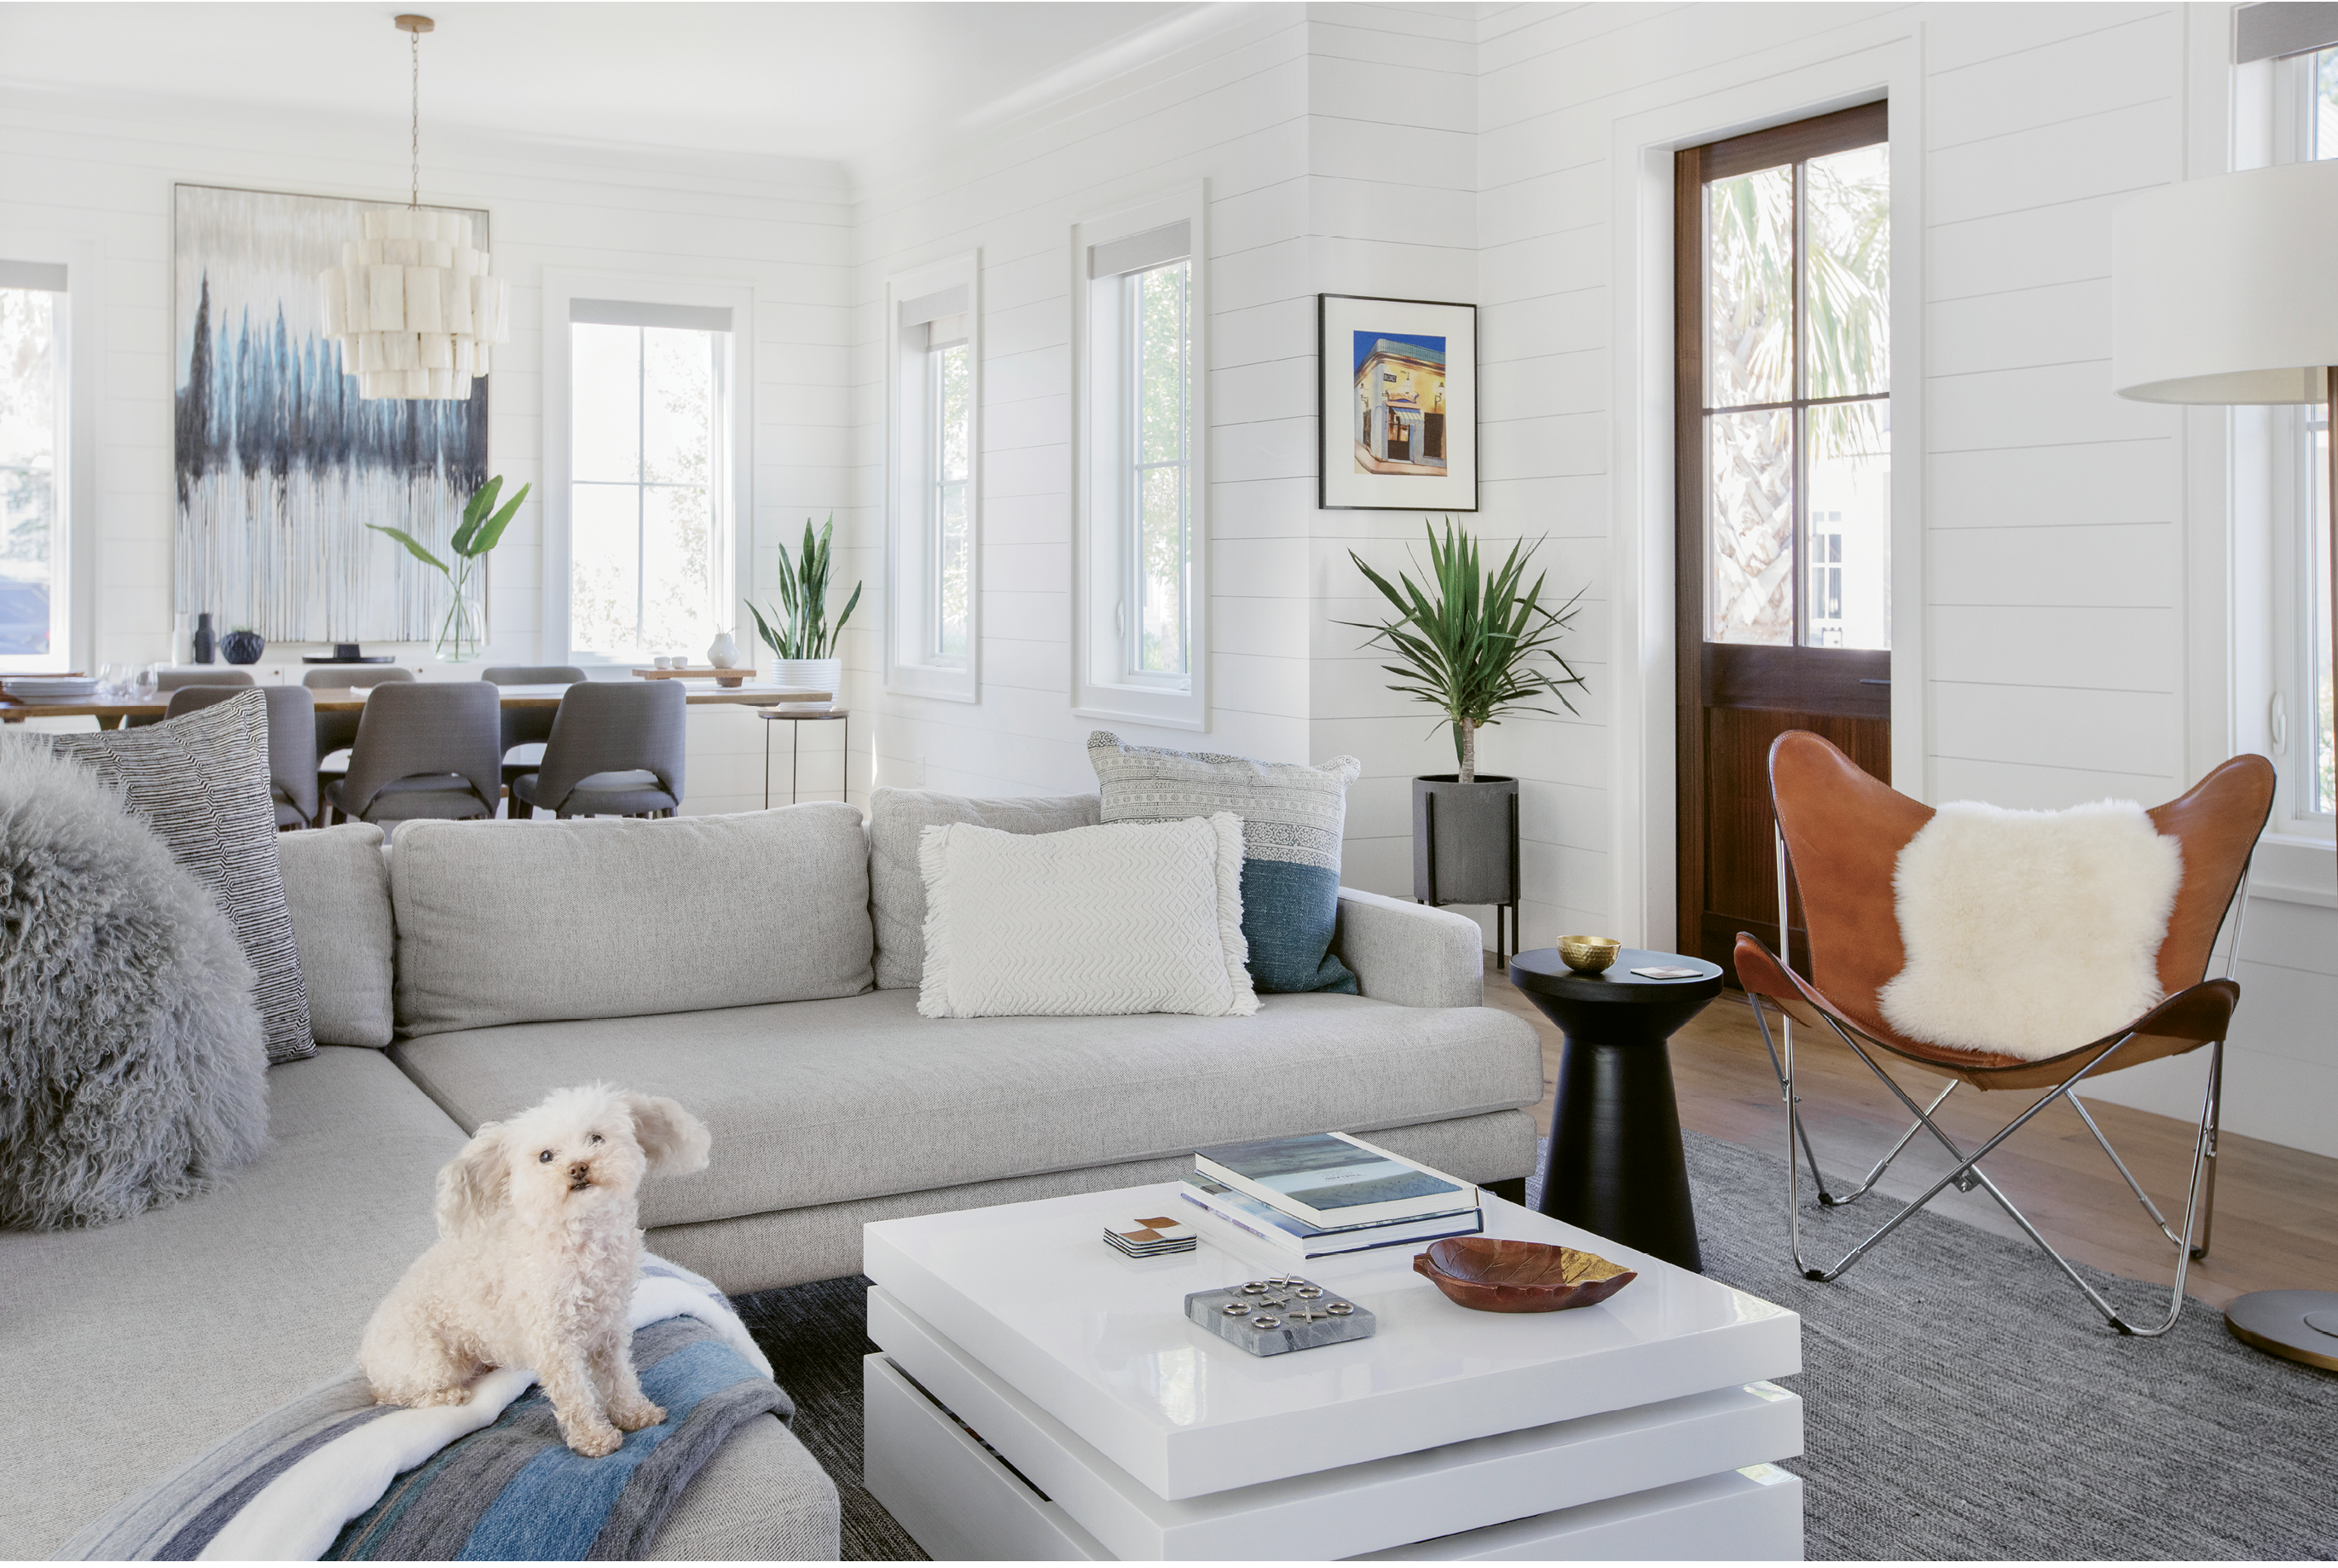 """Wide-Open Spaces: Shiplap walls painted in Benjamin Moore's """"White Dove,"""" oak floors, and reclaimed beams set the stage for the open living area, including a cozy sectional sofa from West Elm where Mia the Maltipoo relaxes among pillows from Lyndon Leigh."""